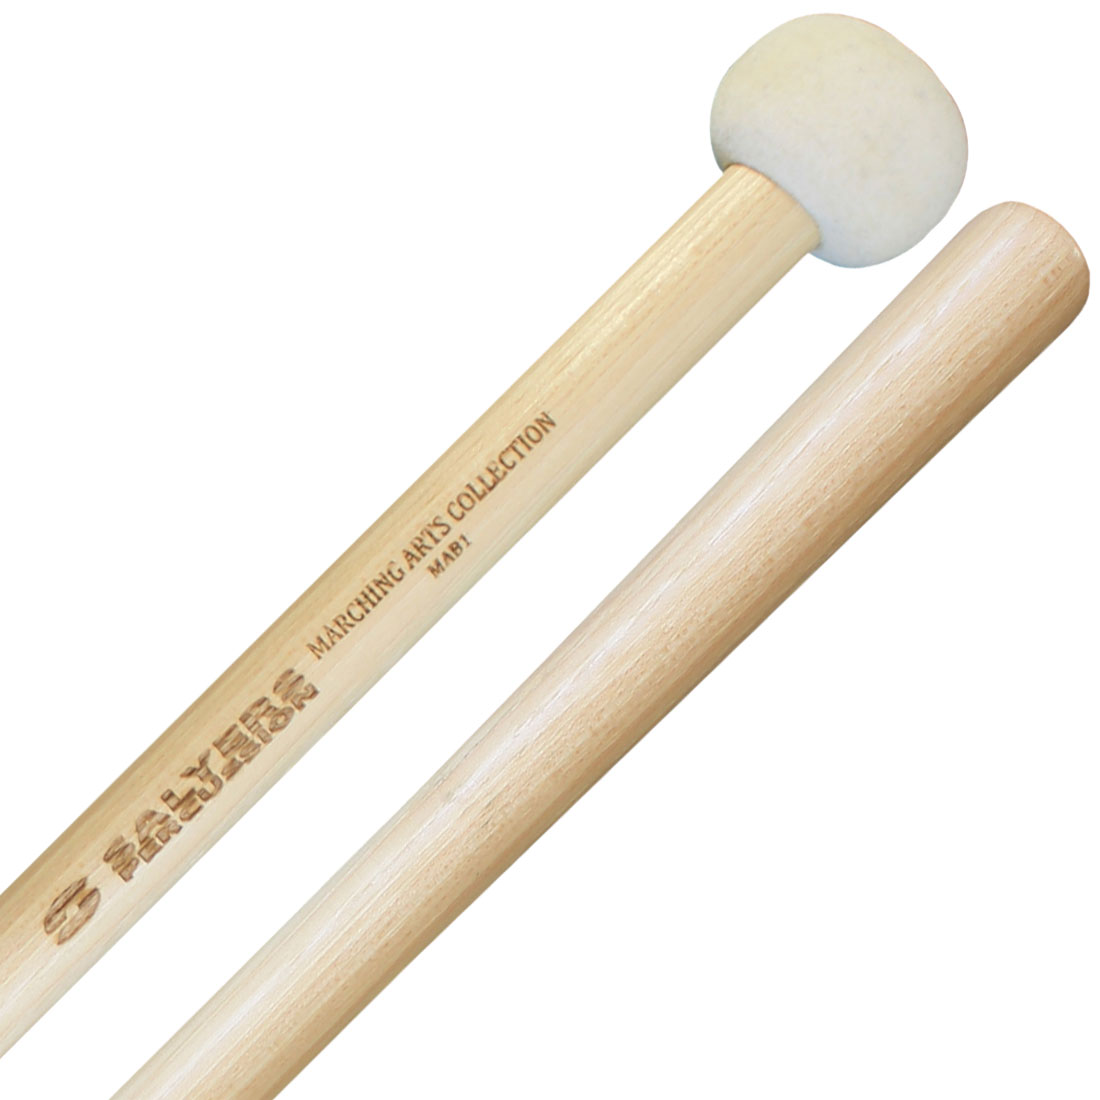 Salyers Percussion MAB1 Marching Arts Collection Extra Small Marching Bass Mallets